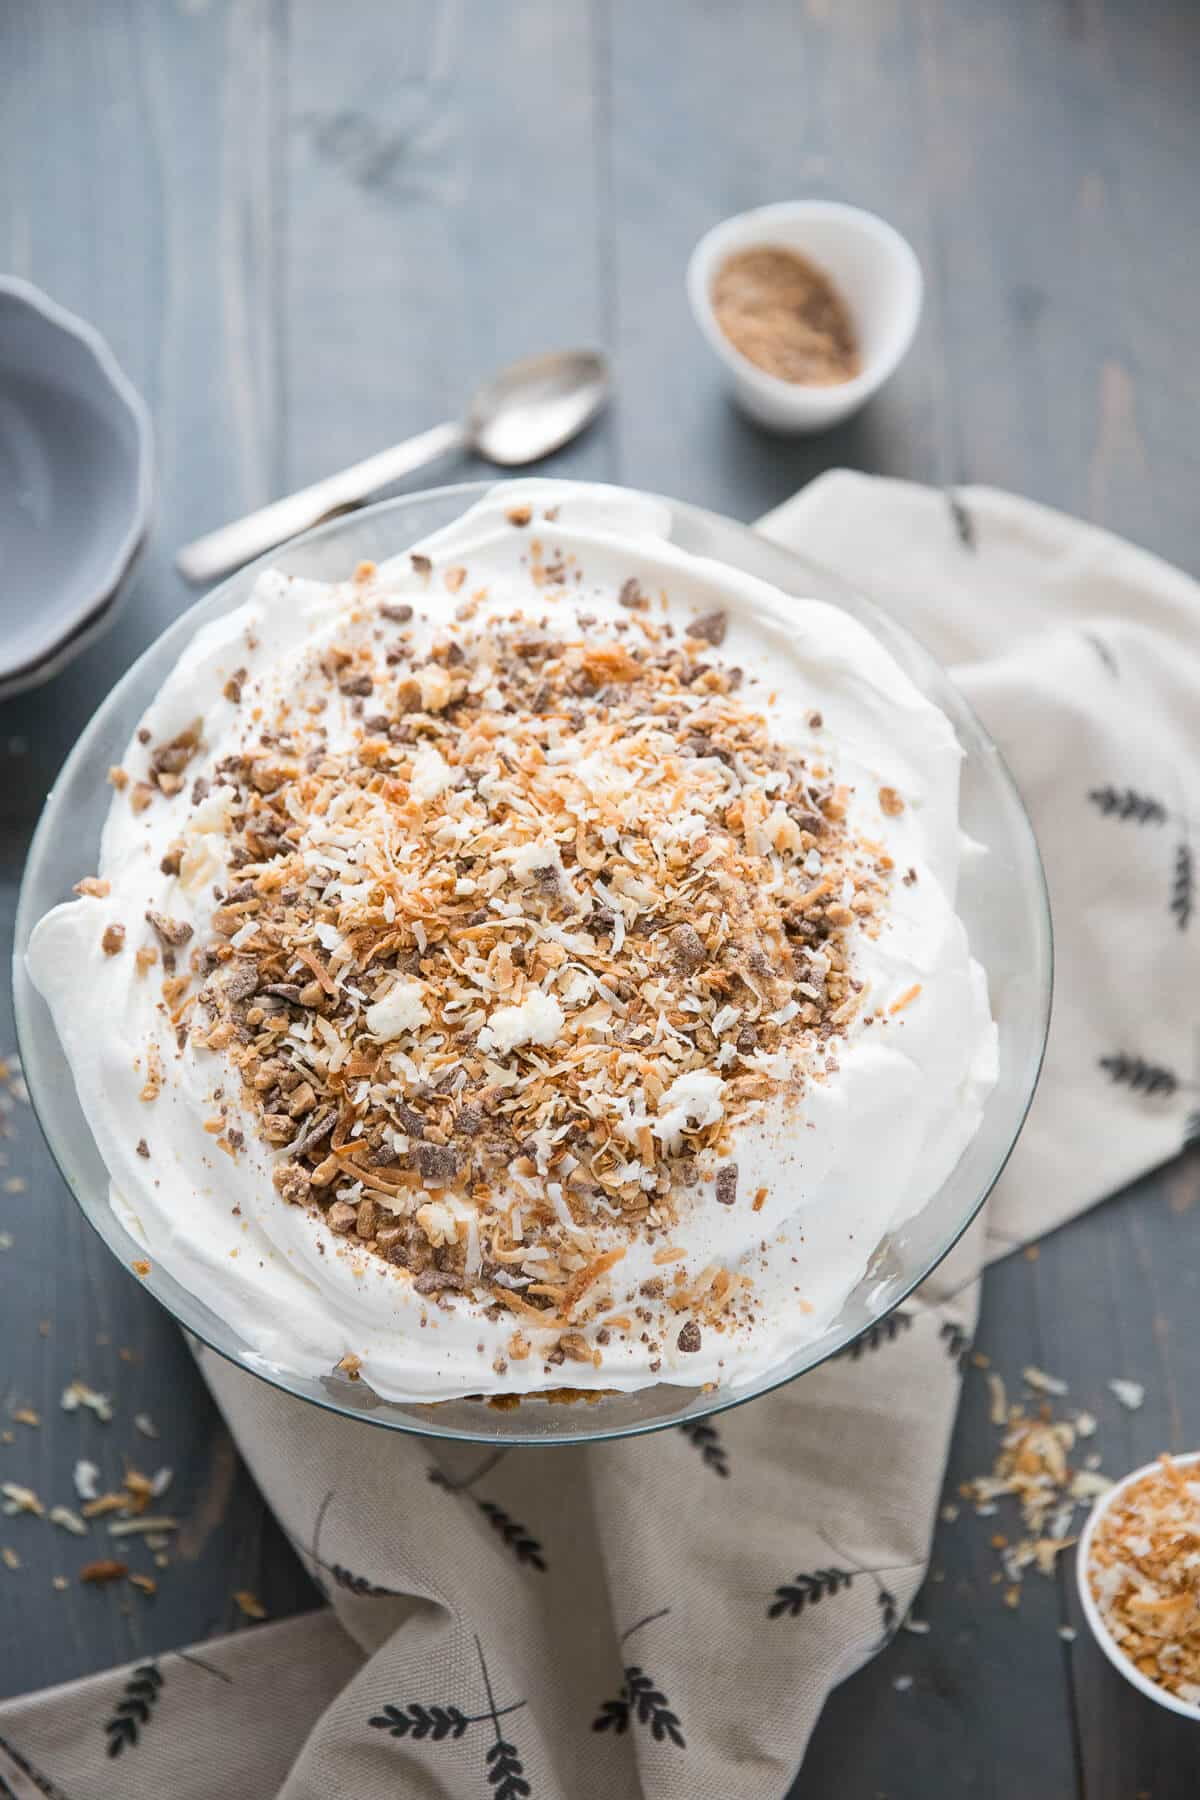 This recipe for carrot cake trifle is perfect for any time you want carrot cake but don't want to do the work!